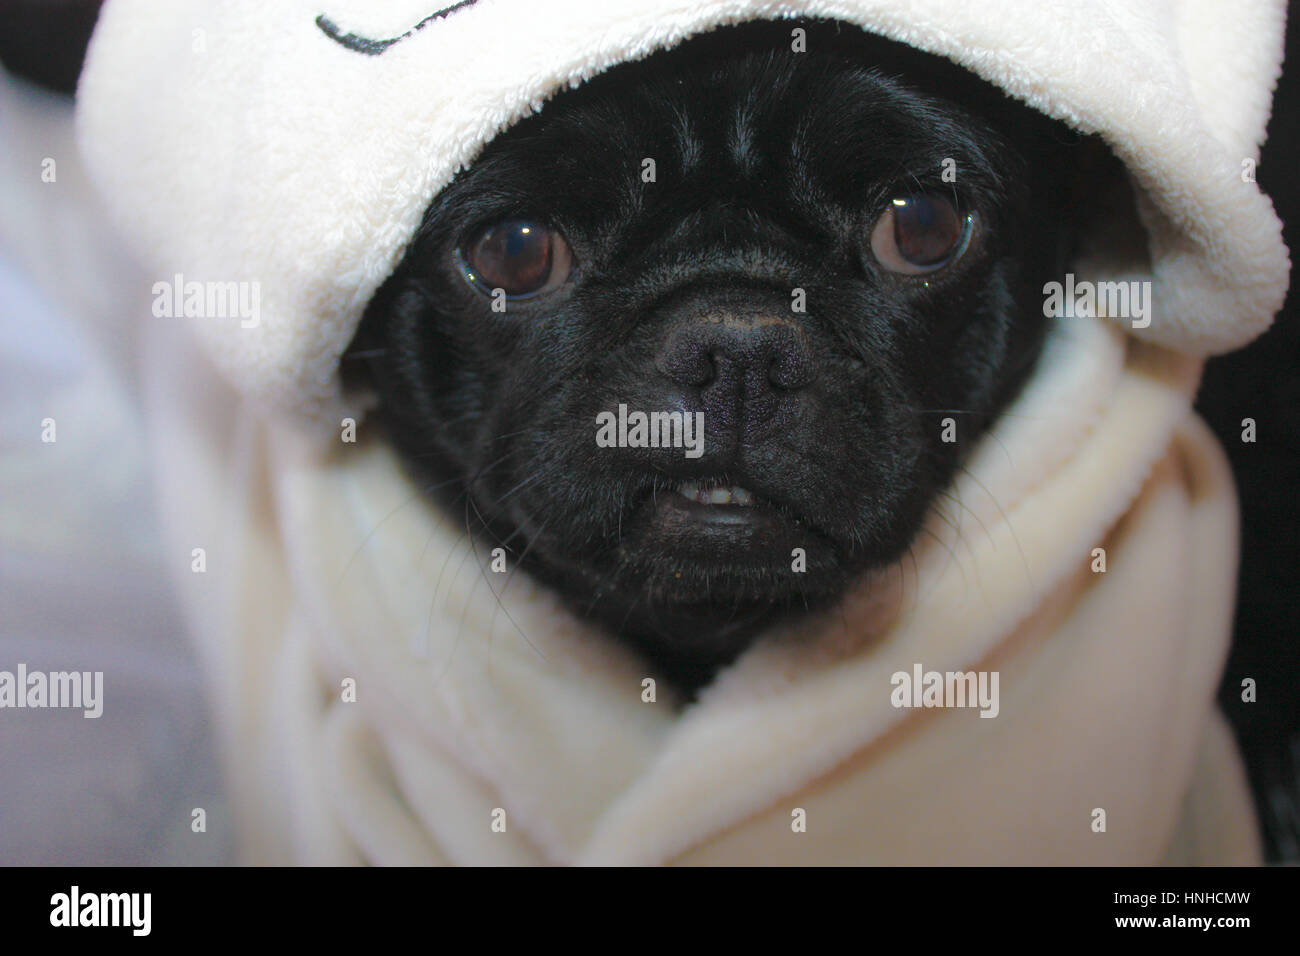 Snug as a pug a selection of images of a black pug looking very cute. Taken front facing Pug in various poses. With - Stock Image